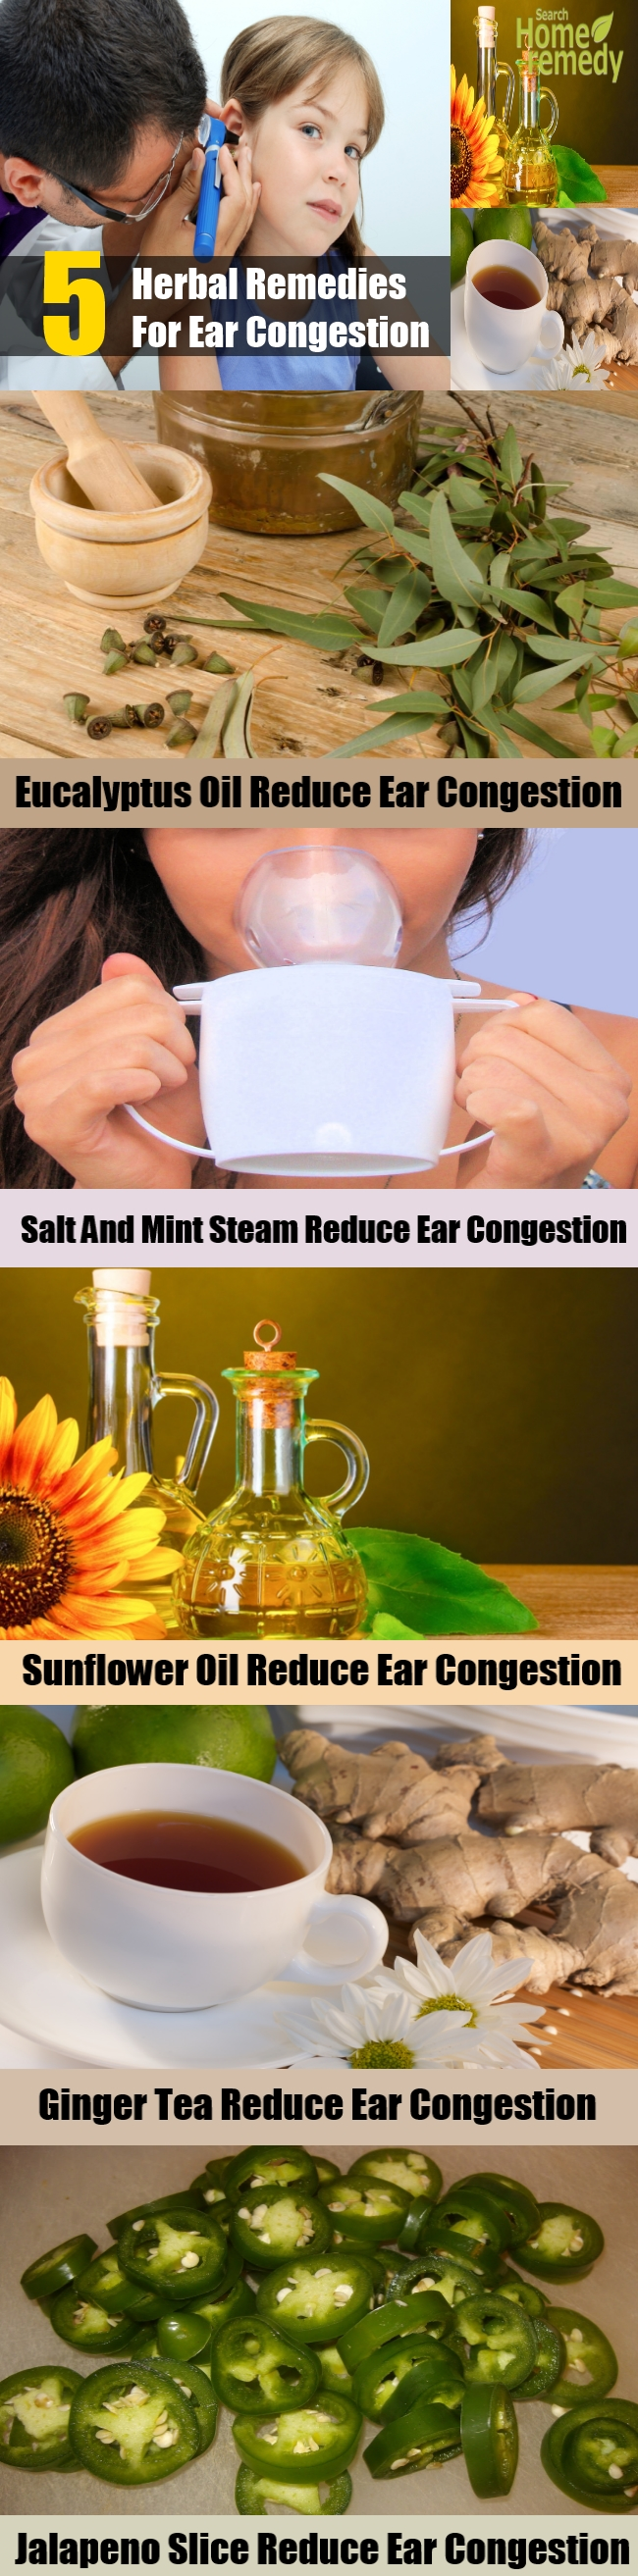 5 Herbal Remedies For Ear Congestion